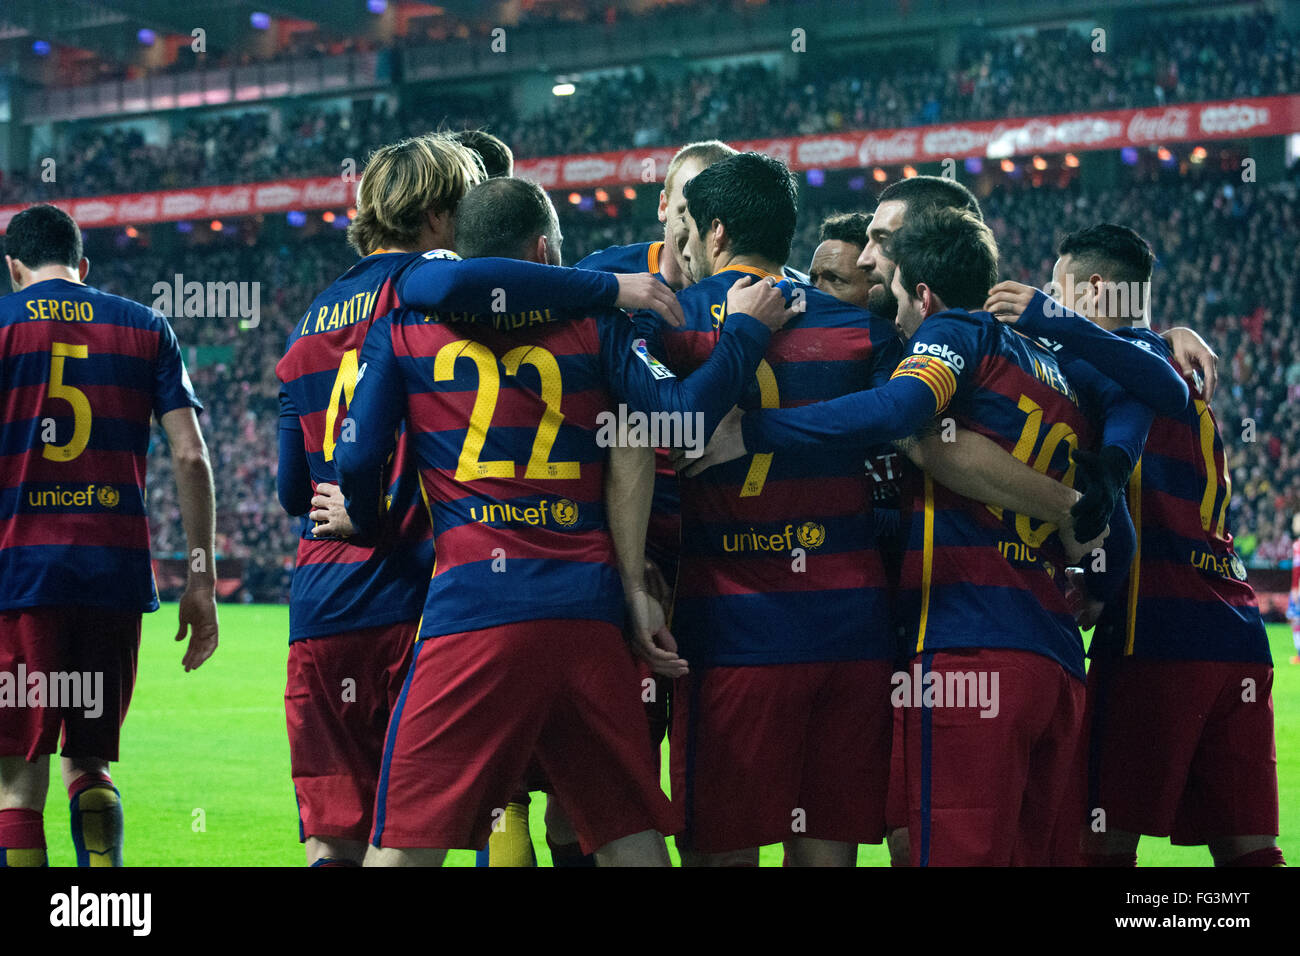 Gijon, Spain. 17th February, 2016. FC Barcelona's players celebrate their second goal during football match - Stock Image